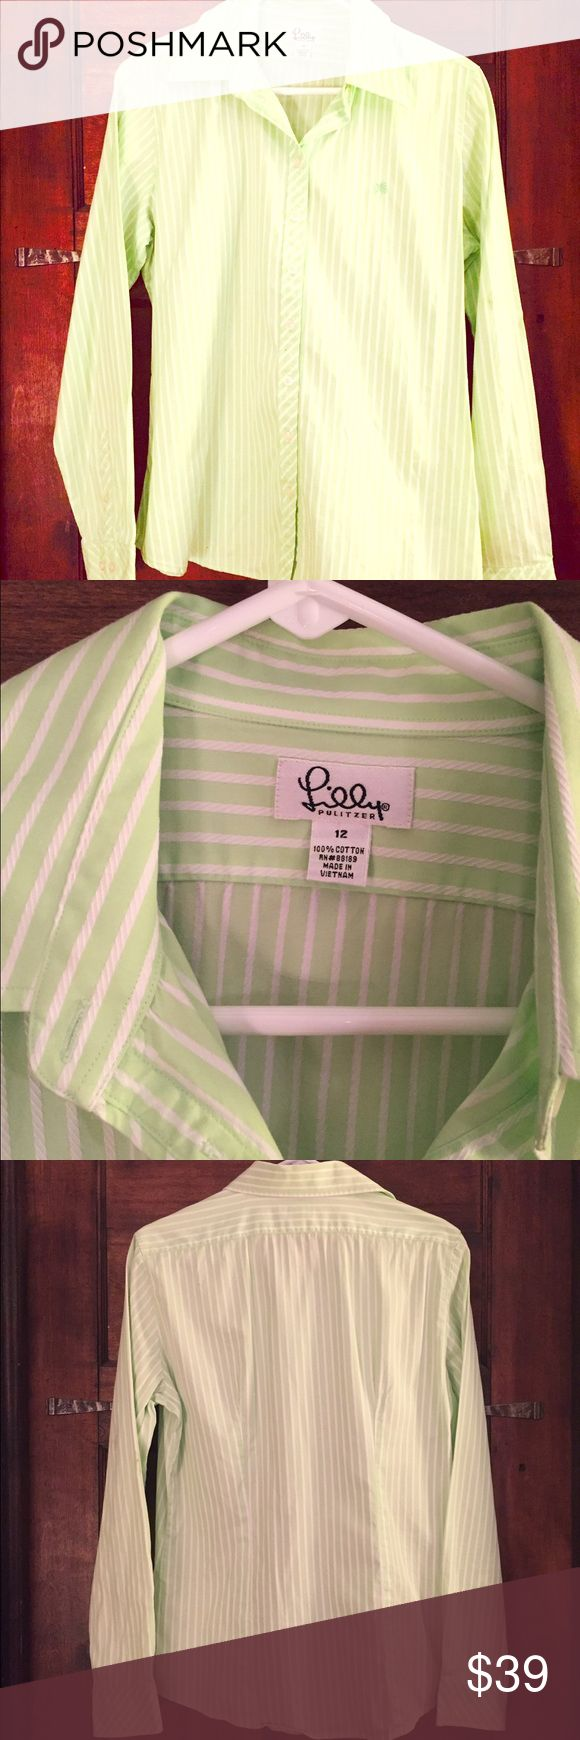 NWOT Lilly Pulitzer Lime Green Women's Oxford 12 NWOT! Soft, semi-stretchy fitted Oxford button-down. Lime green with slimming vertical white pinstripe. Great for office or leisure. Lightweight fabric is perfect on its own but doesn't get too hot under a blazer for professional settings. Lilly Pulitzer Tops Button Down Shirts